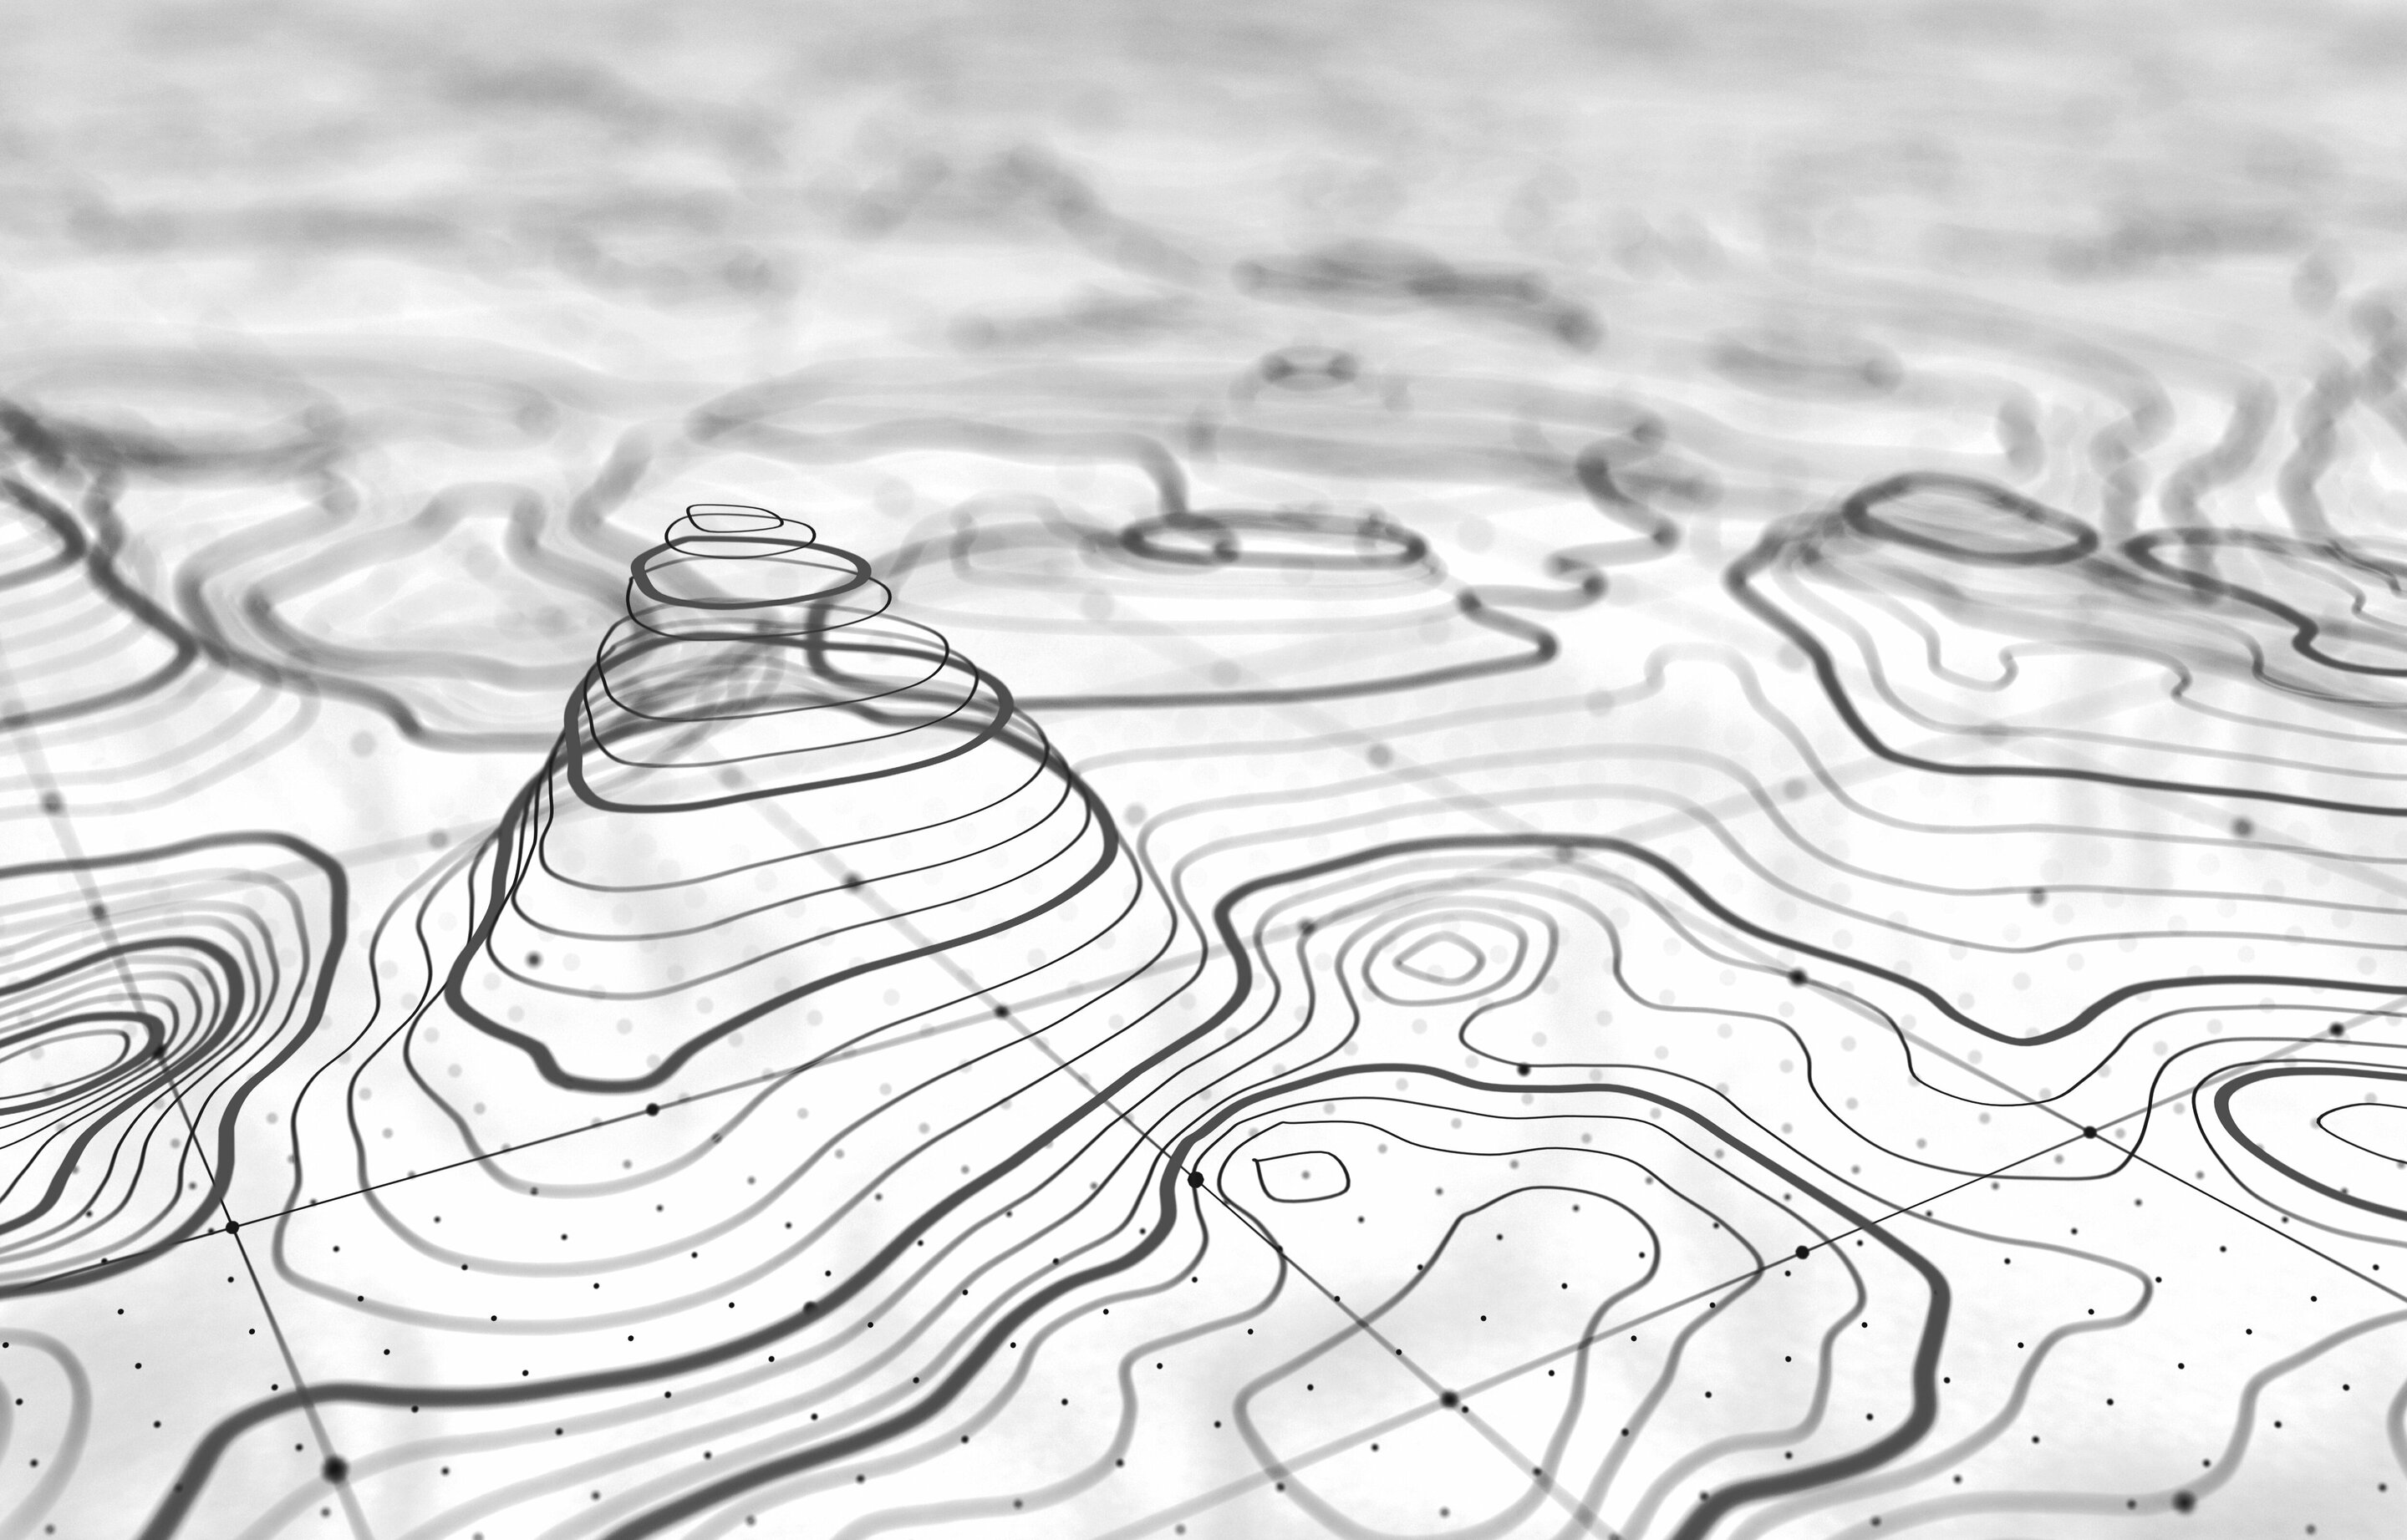 Topographic Map Games.Video Games Could Teach Spatial Skills Lost To A Society Dependent